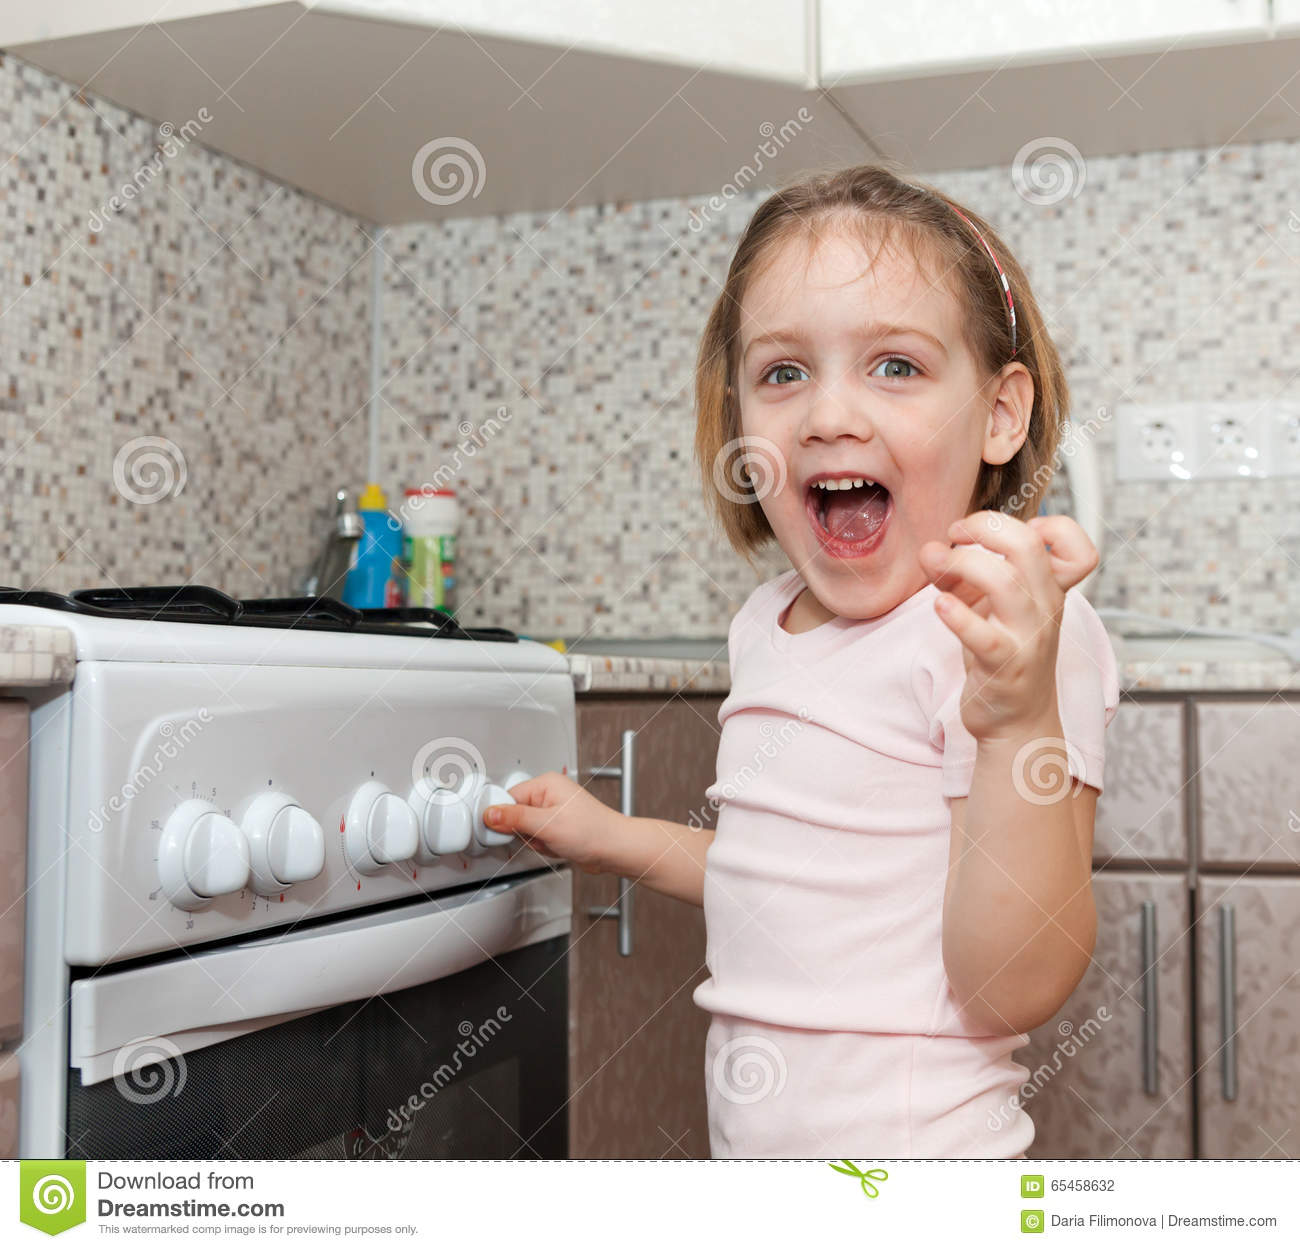 child out supervision playing stove stock photo image child out supervision playing stove